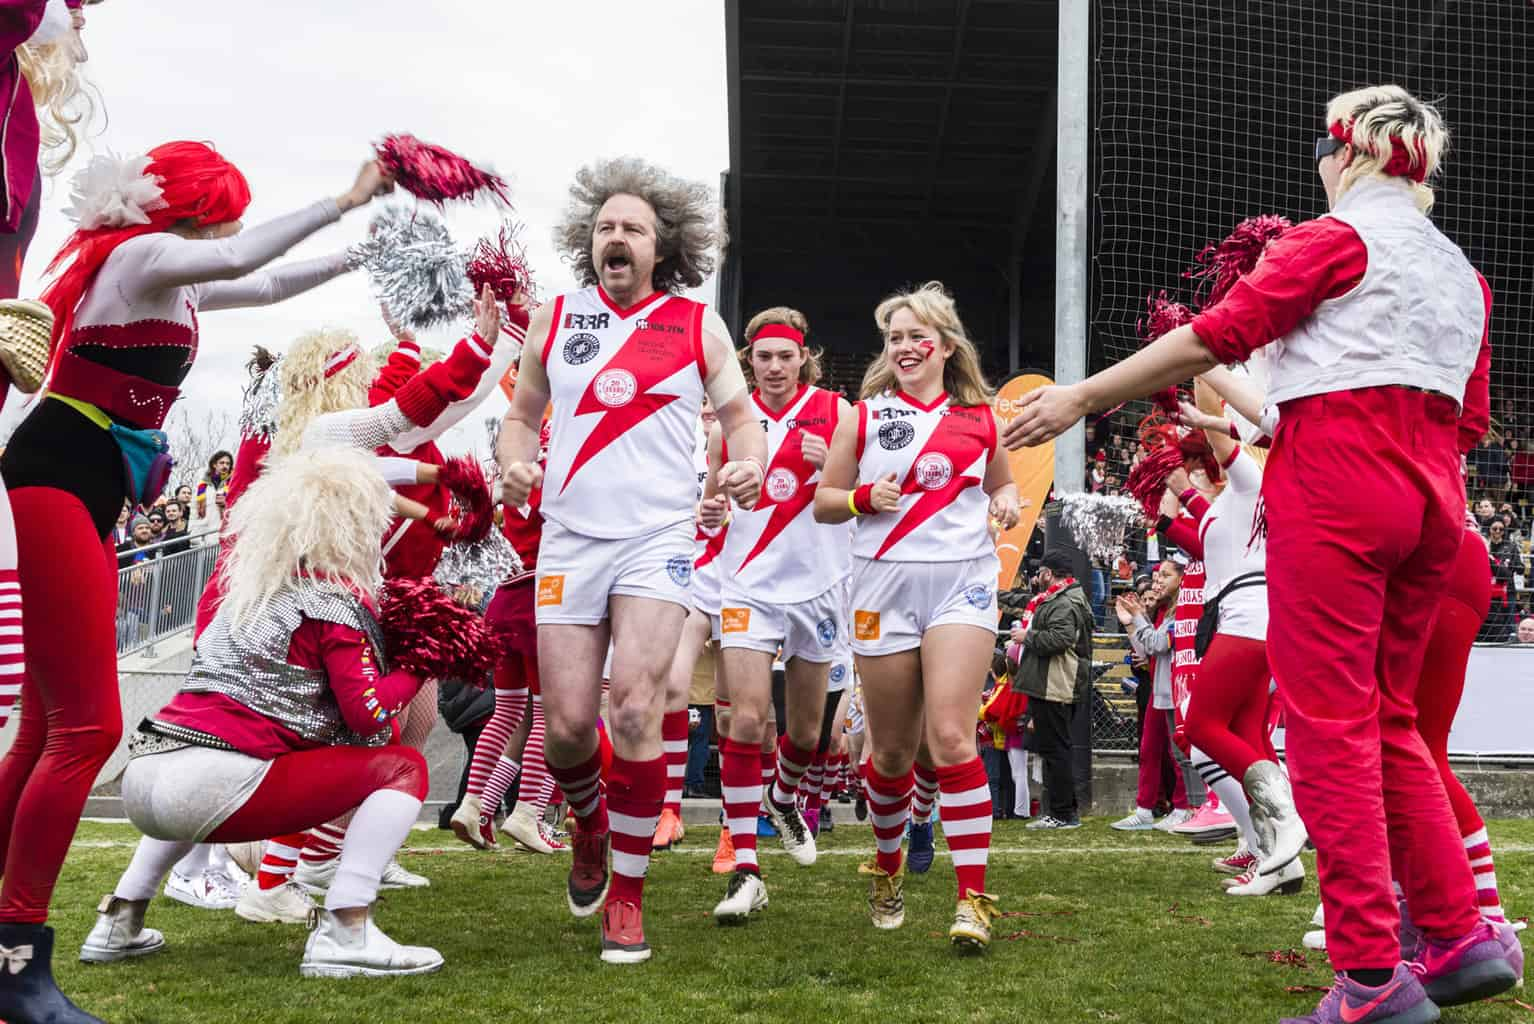 Scene News: The 2019 Reclink Community Cup Announces 25th Anniversary